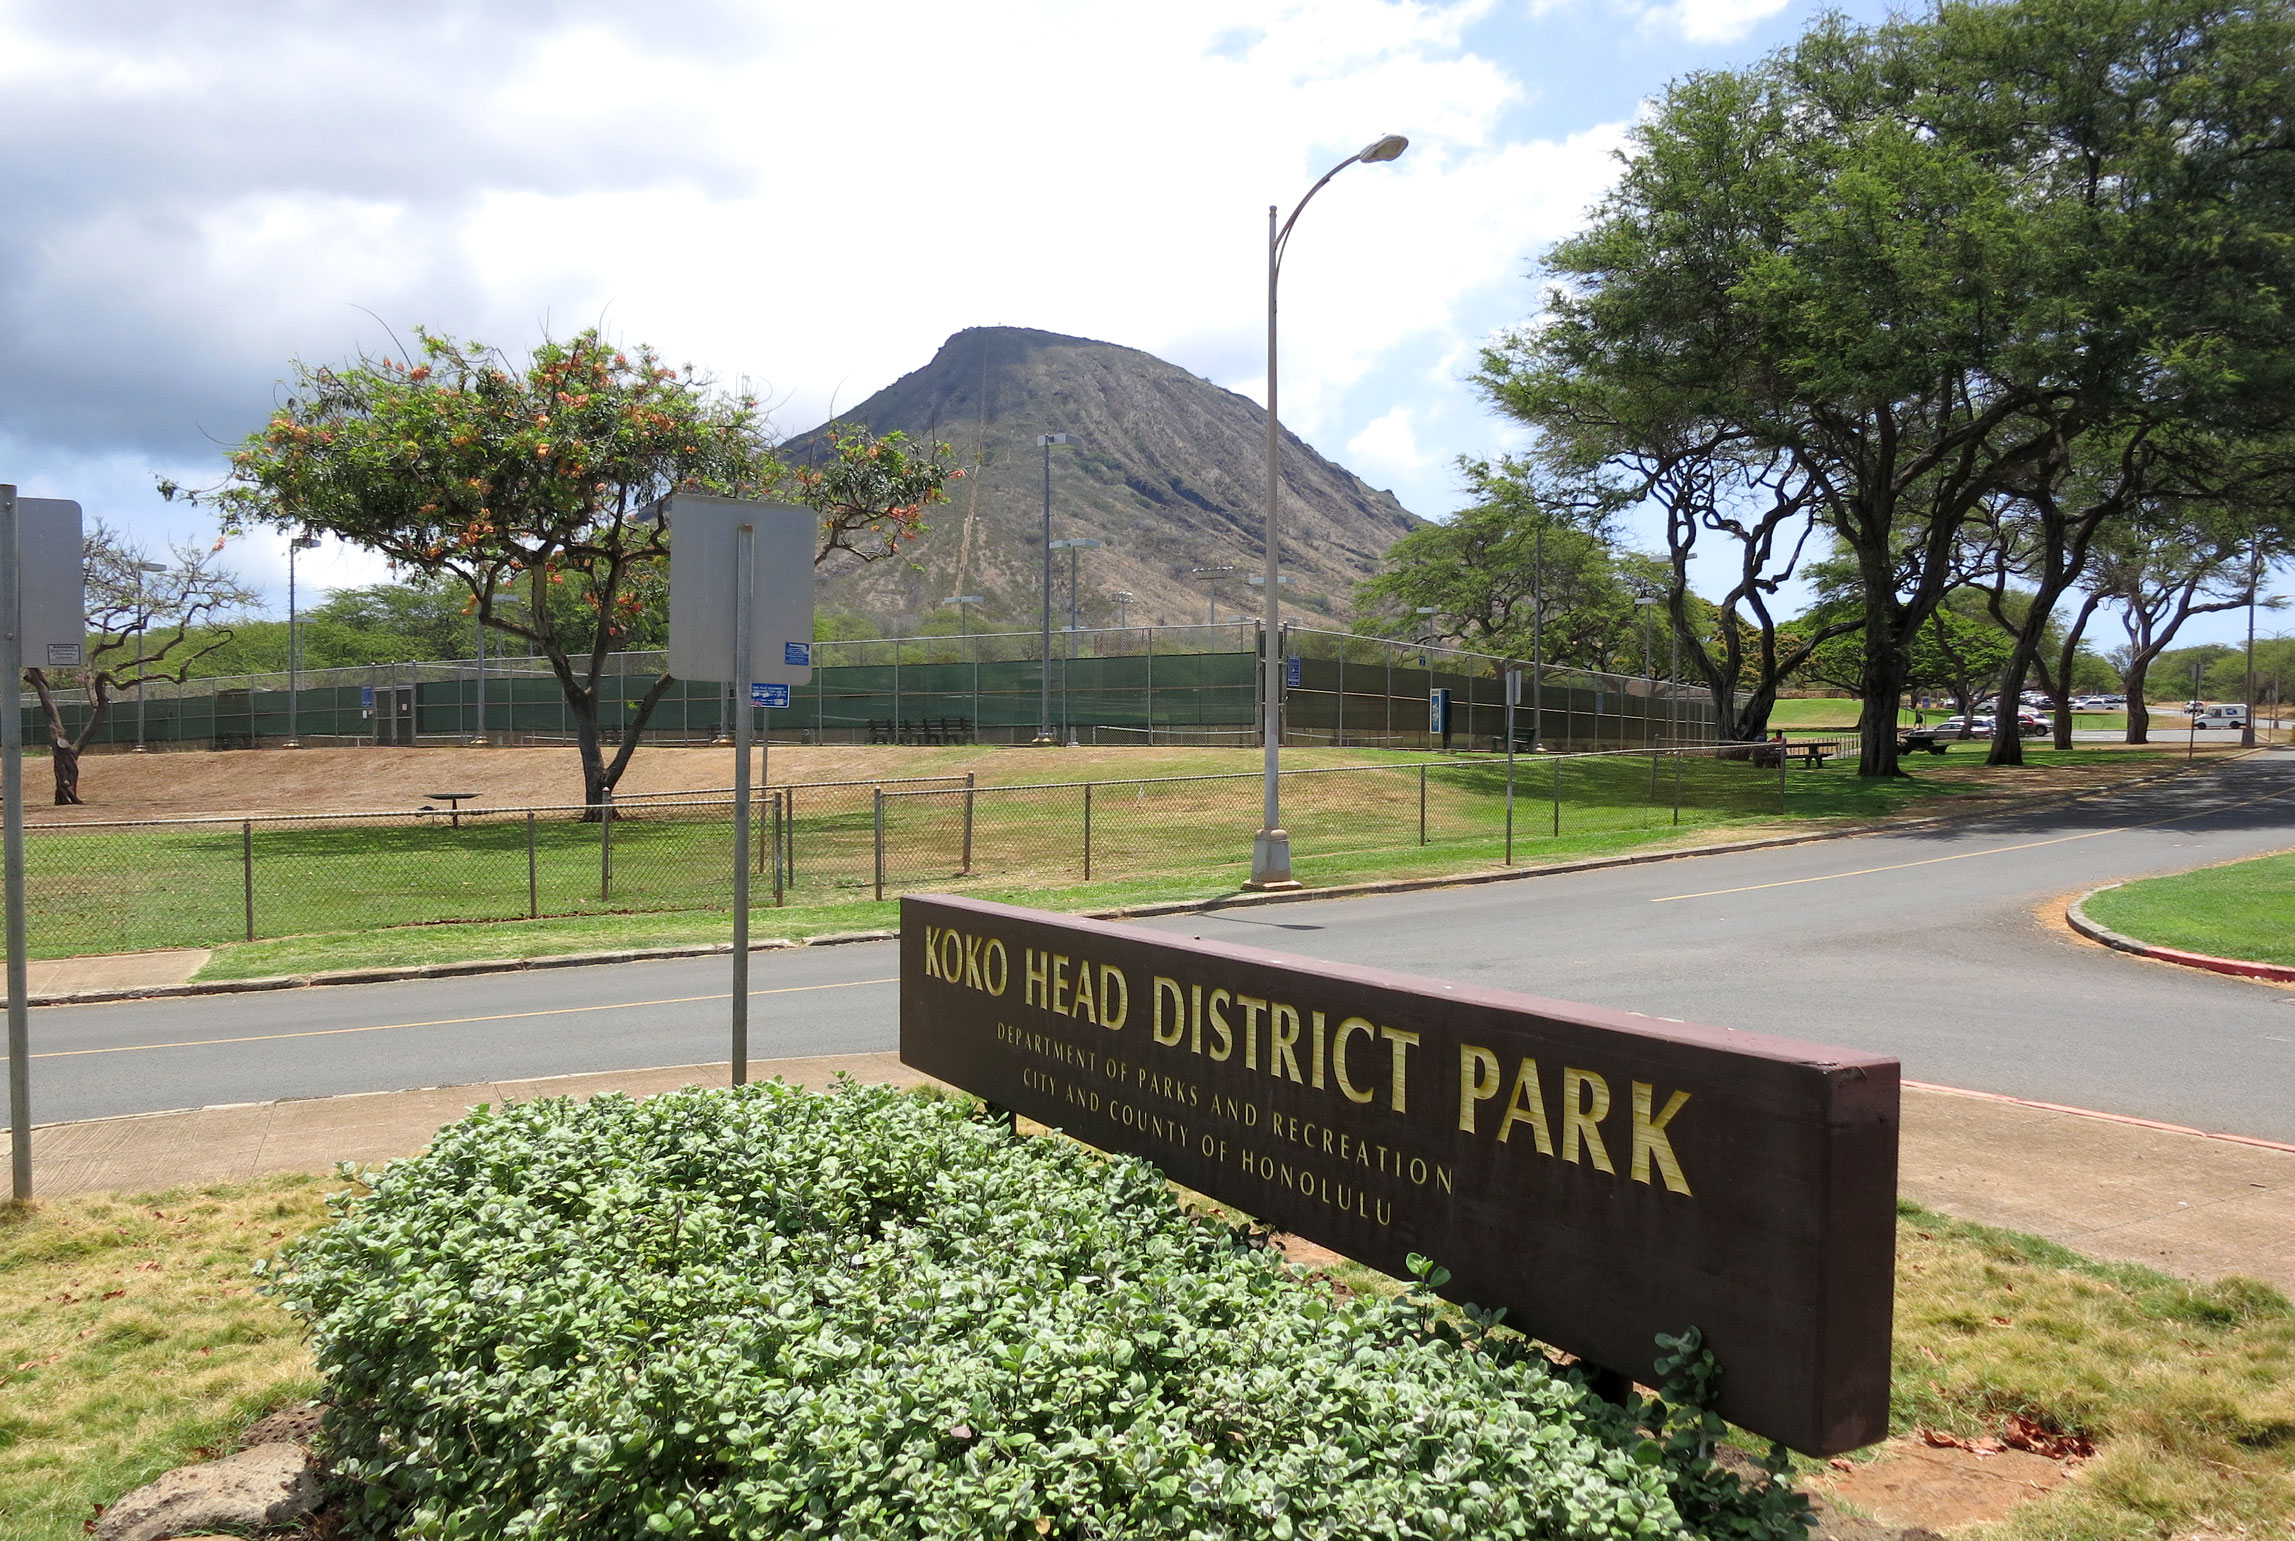 Koko Head District Parkl